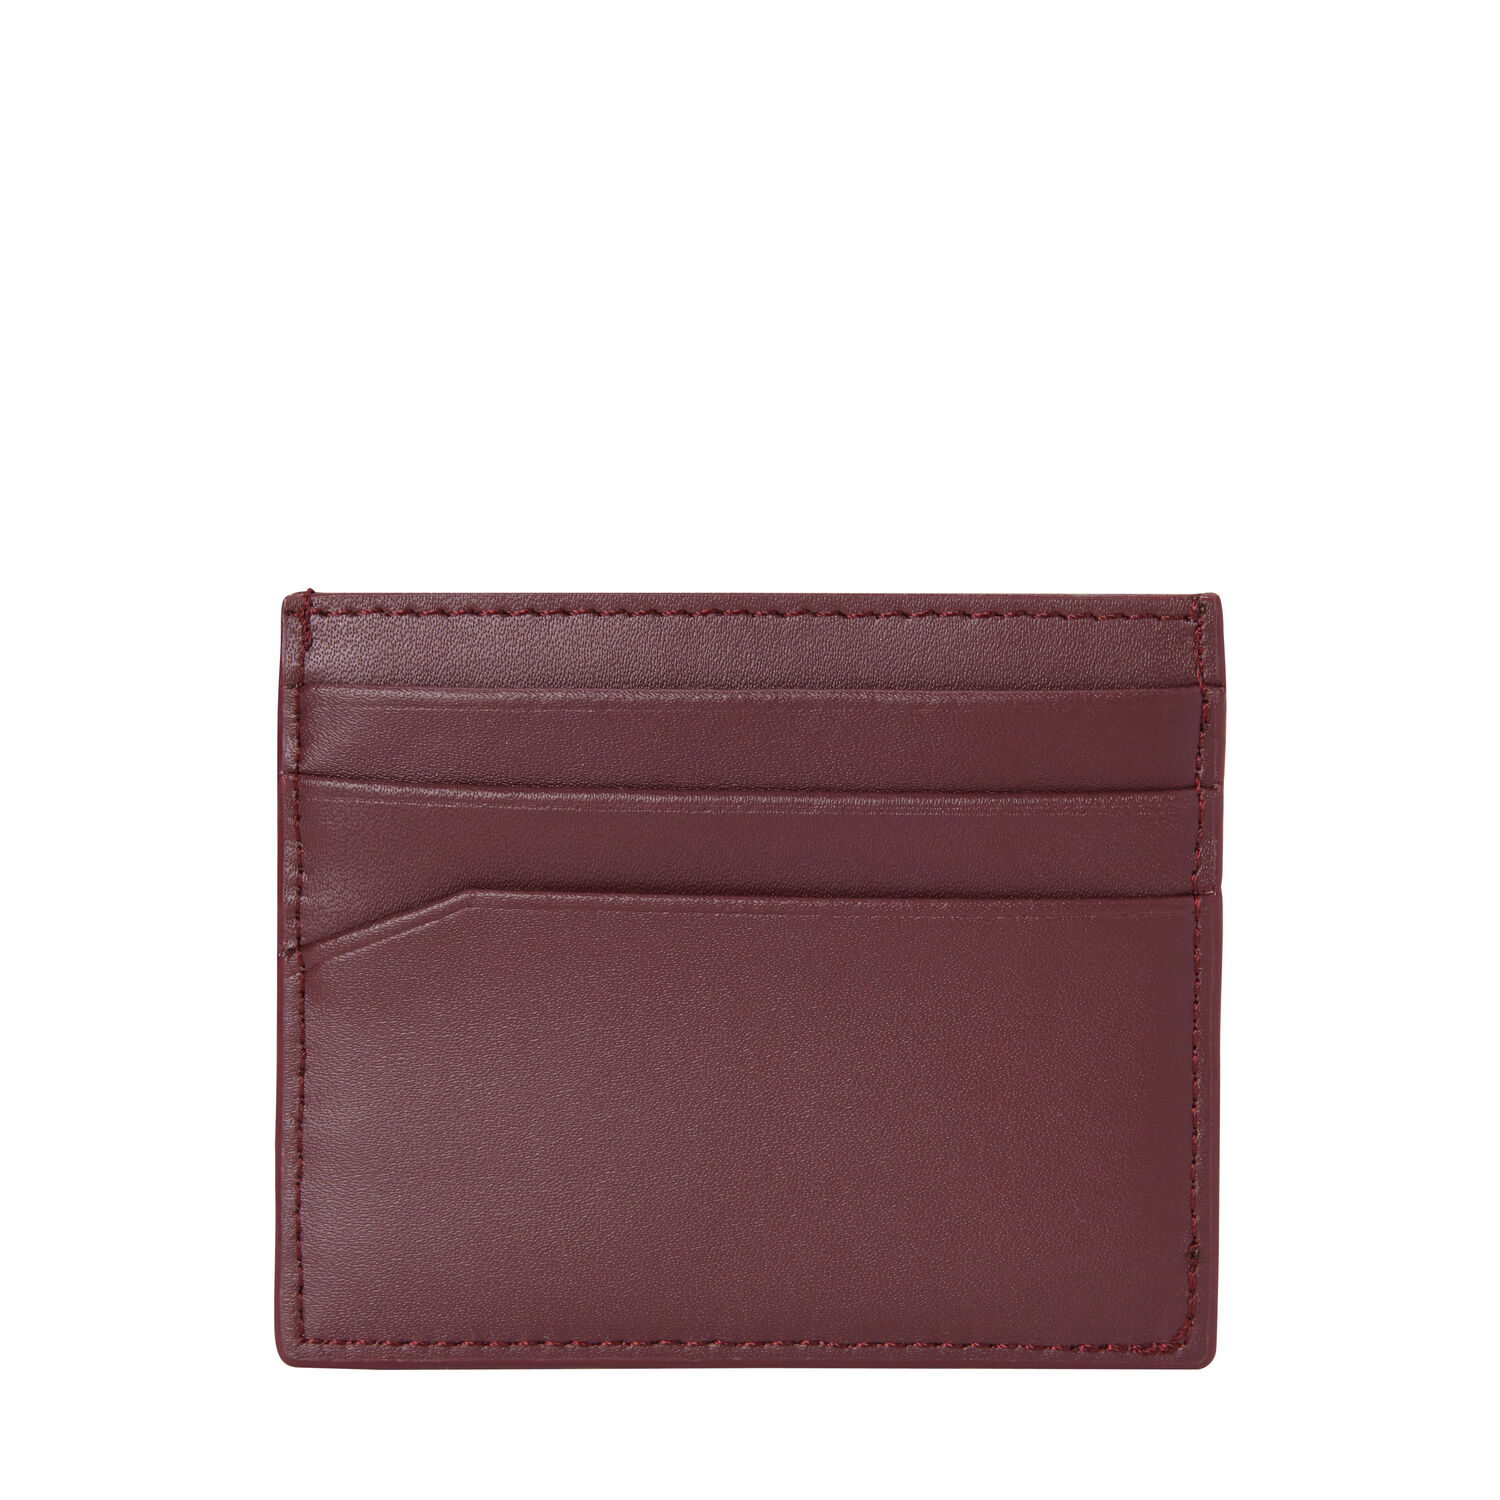 ead41372aa2d4e Samsonite Leather Card Case in the color Sangria.